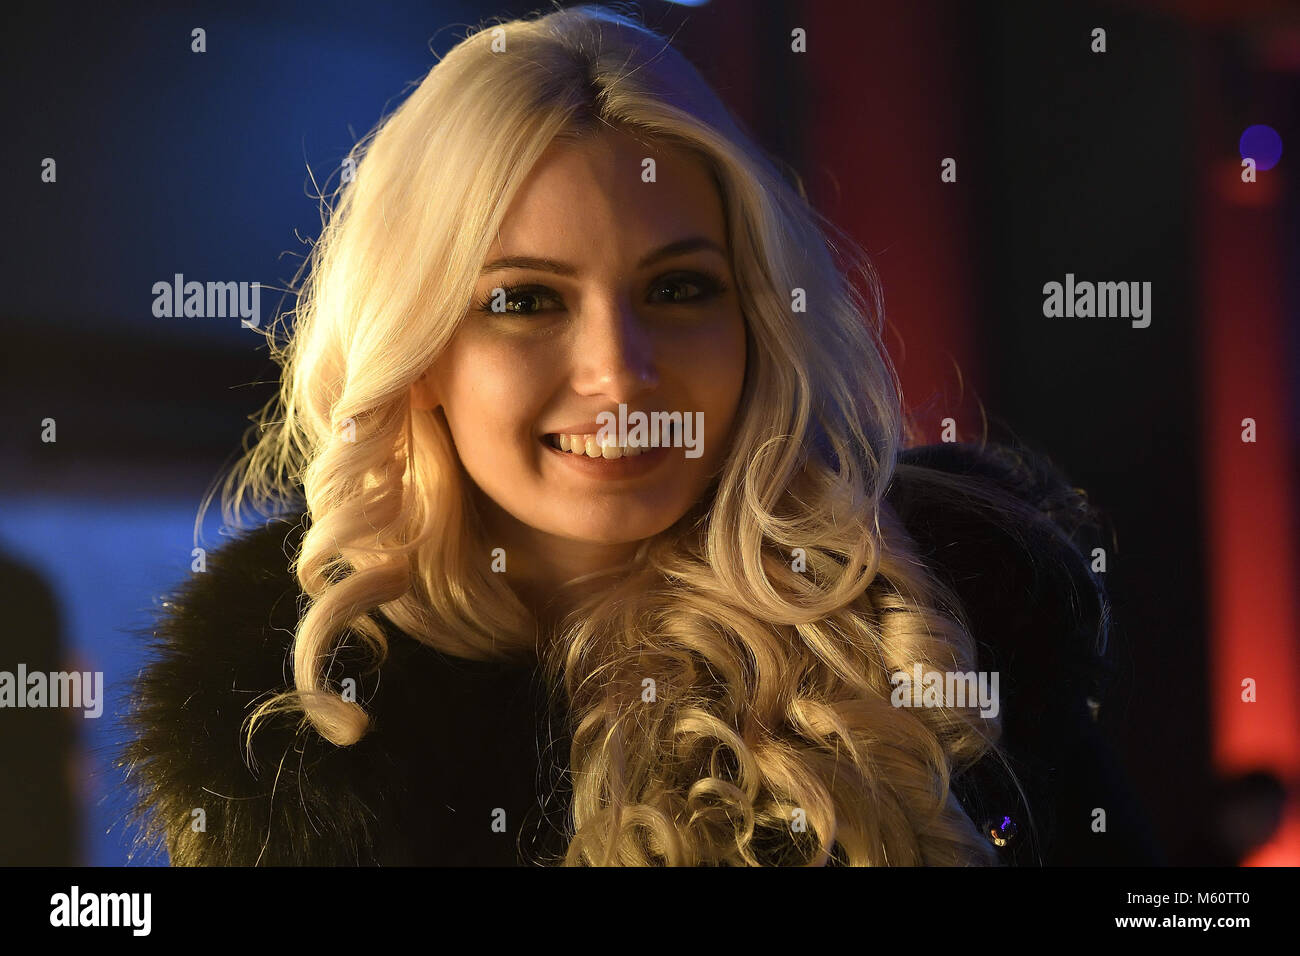 February 24, 2018 - Miss Germany  2018 competition takes place in the Europa-Park Arena in Rust. Student Anahita - Stock Image